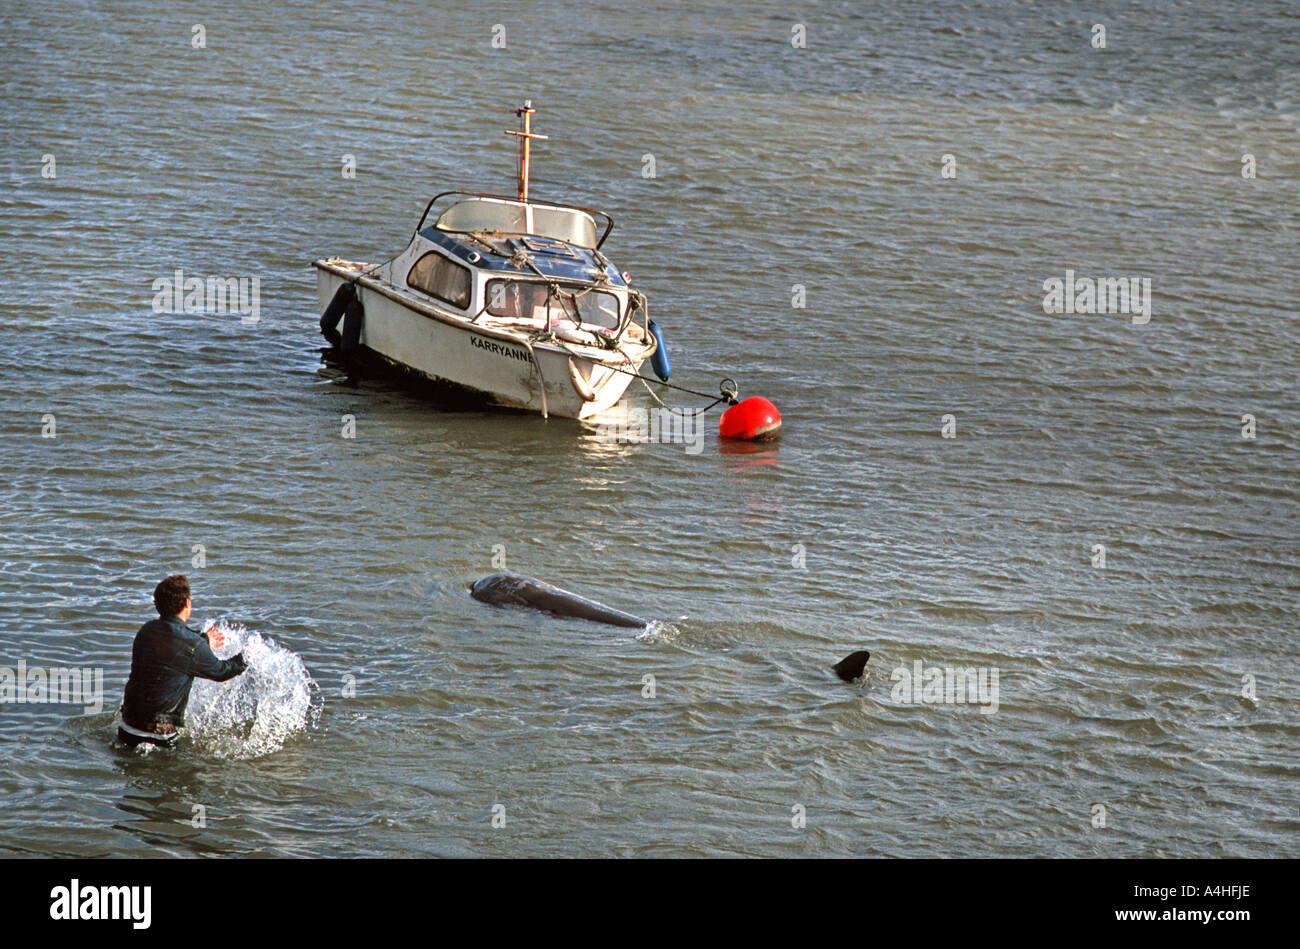 A Northern Bottlenosed whale lost on the River Thames London Next to Albert Bridge Chelsea England United Kingdom Rescue attempt - Stock Image